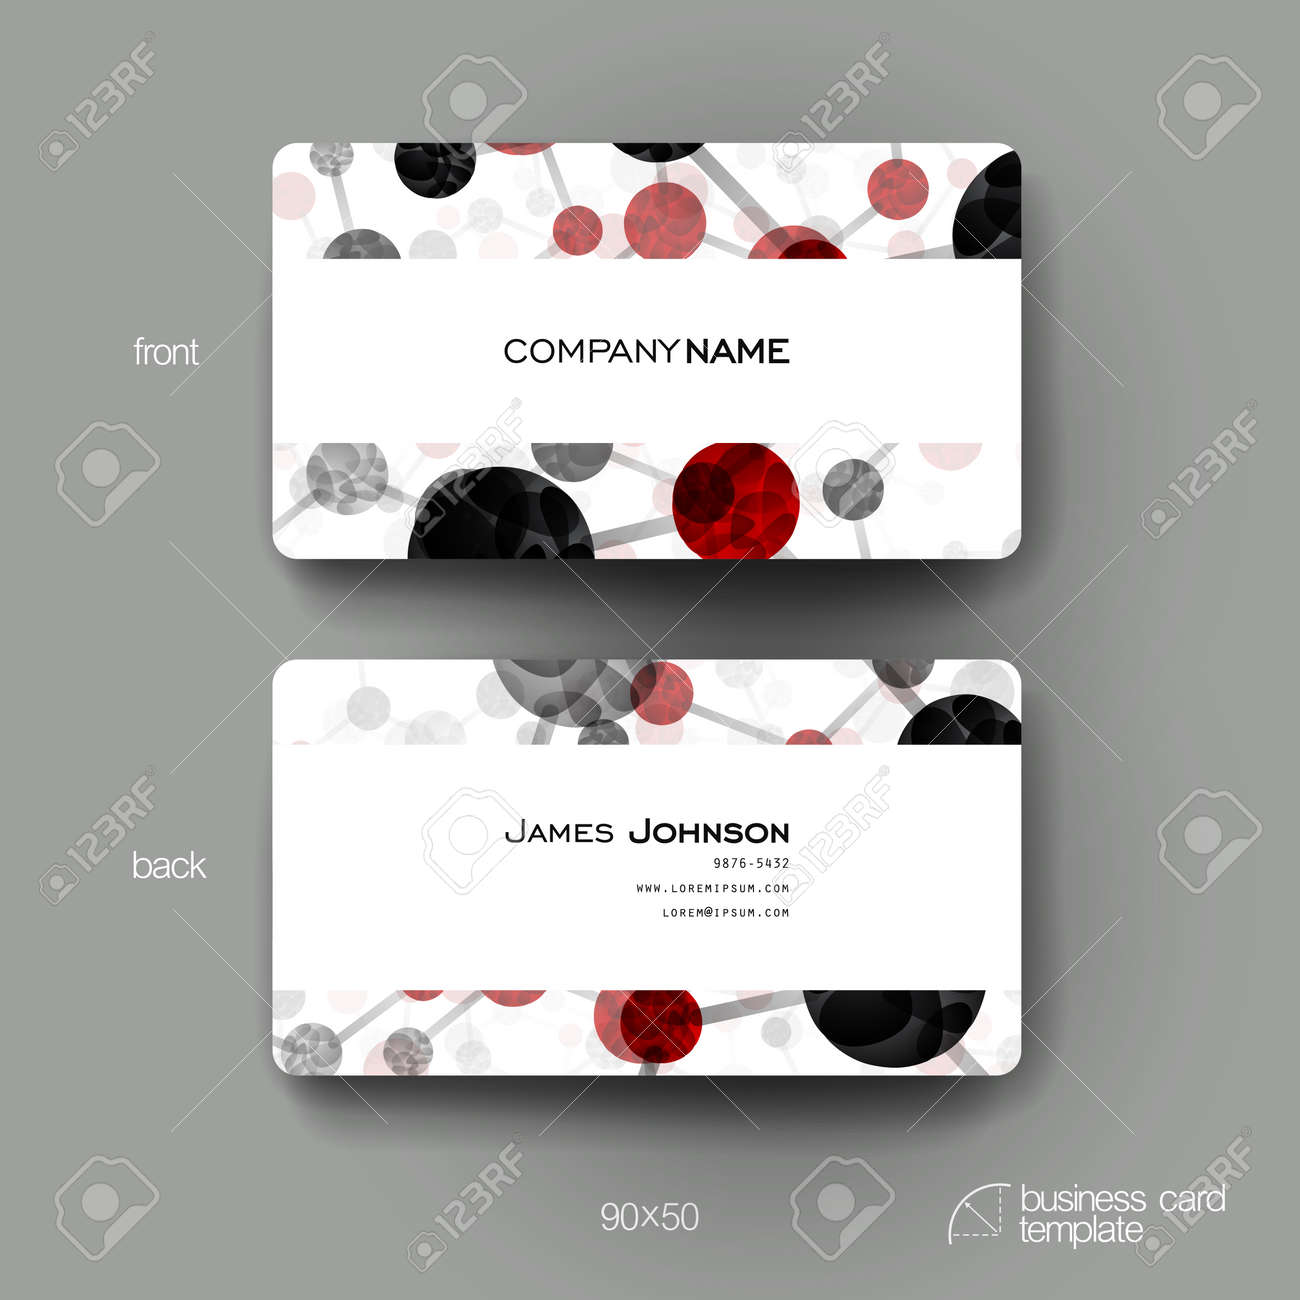 Business Card Vector Template With DNA Molecule Background. Creative ...